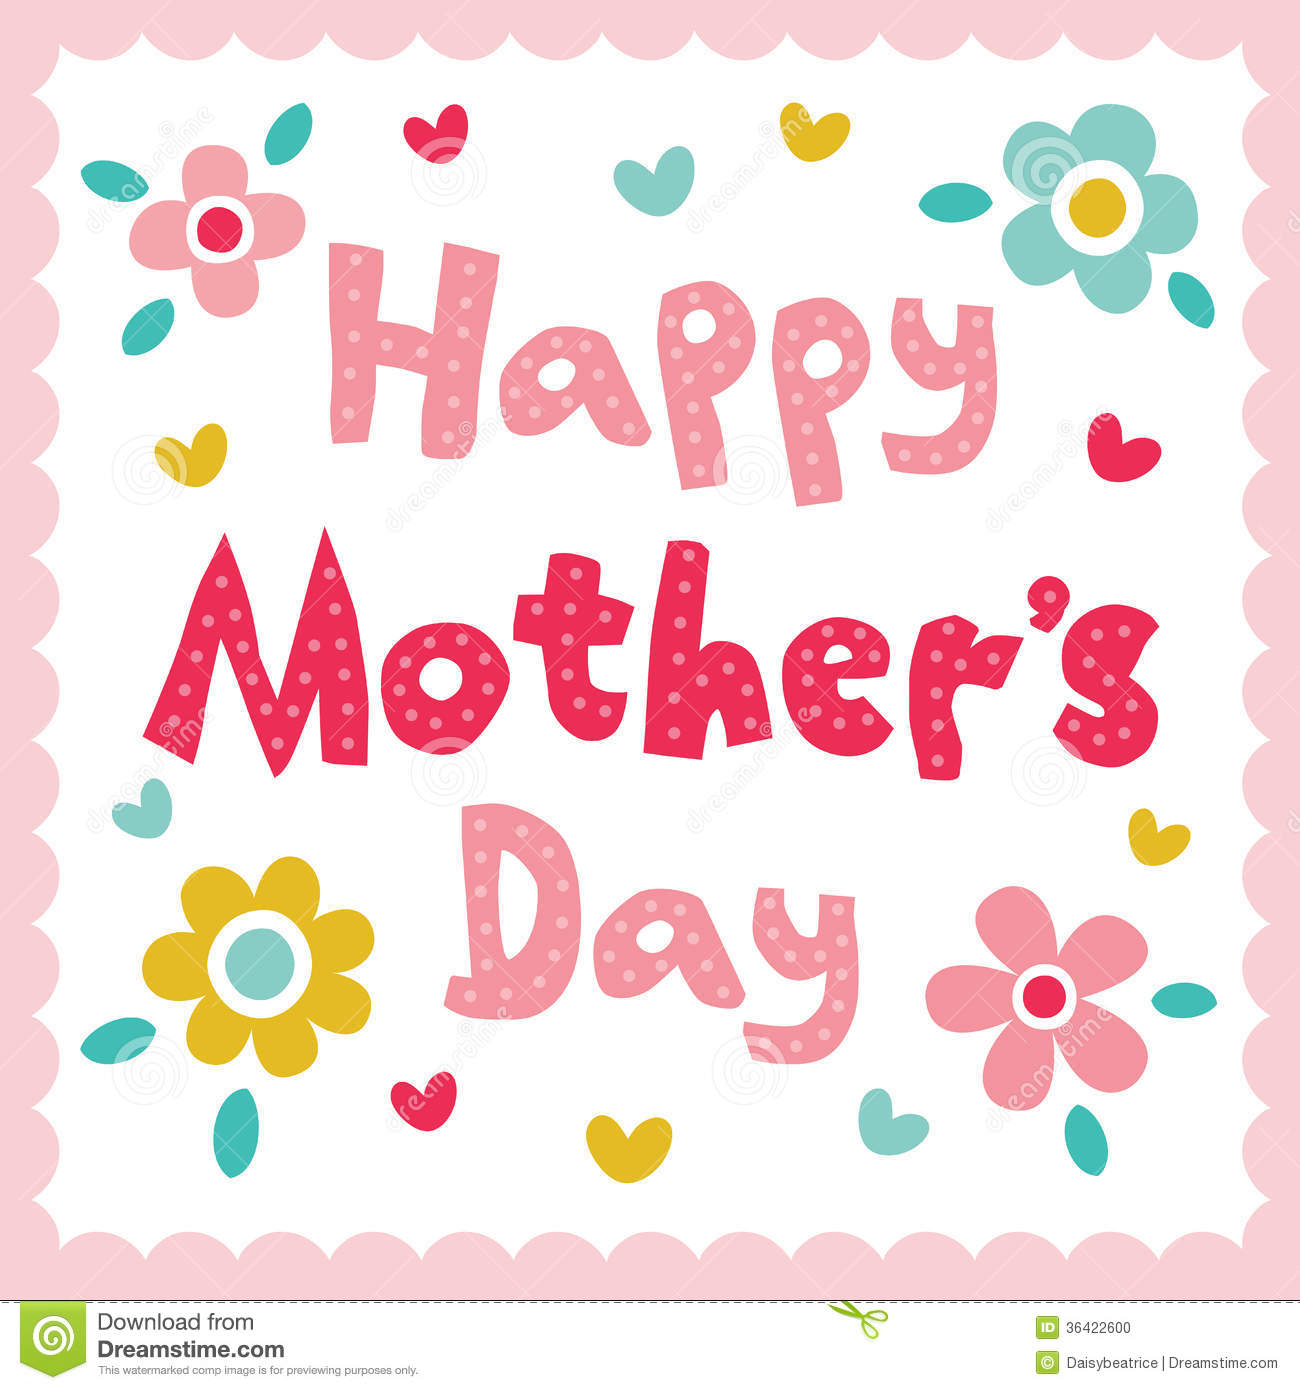 Happy Mothers Day Card Stock Photo - Image: 36422600